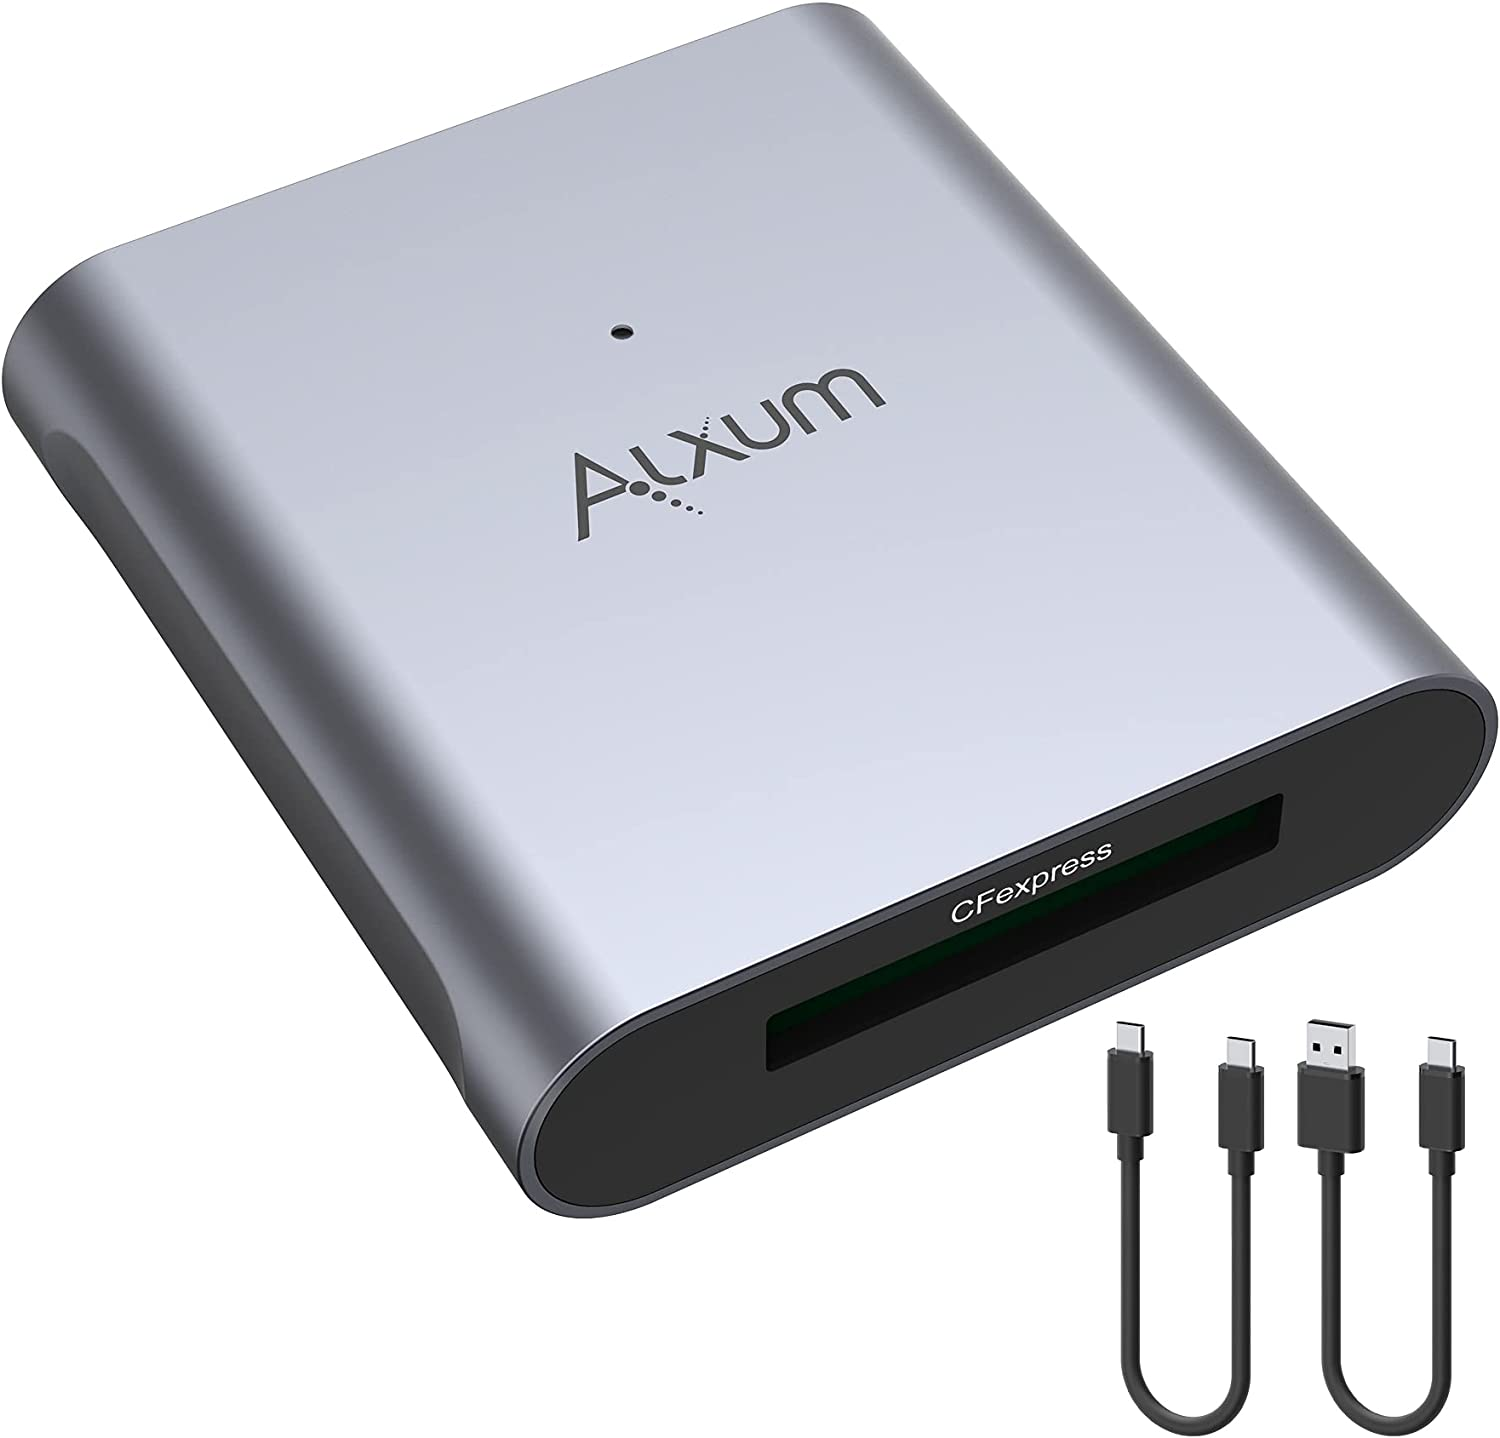 CFexpress Card Reader, Alxum USB 3.1 Gen 2 10Gbps USB C to CFexpress Type B Memory Card Adapter for Mac, Support Thunderbolt 3 Port Connection, with 2 Data Cable, Support Android/Windows/Mac OS/Linux